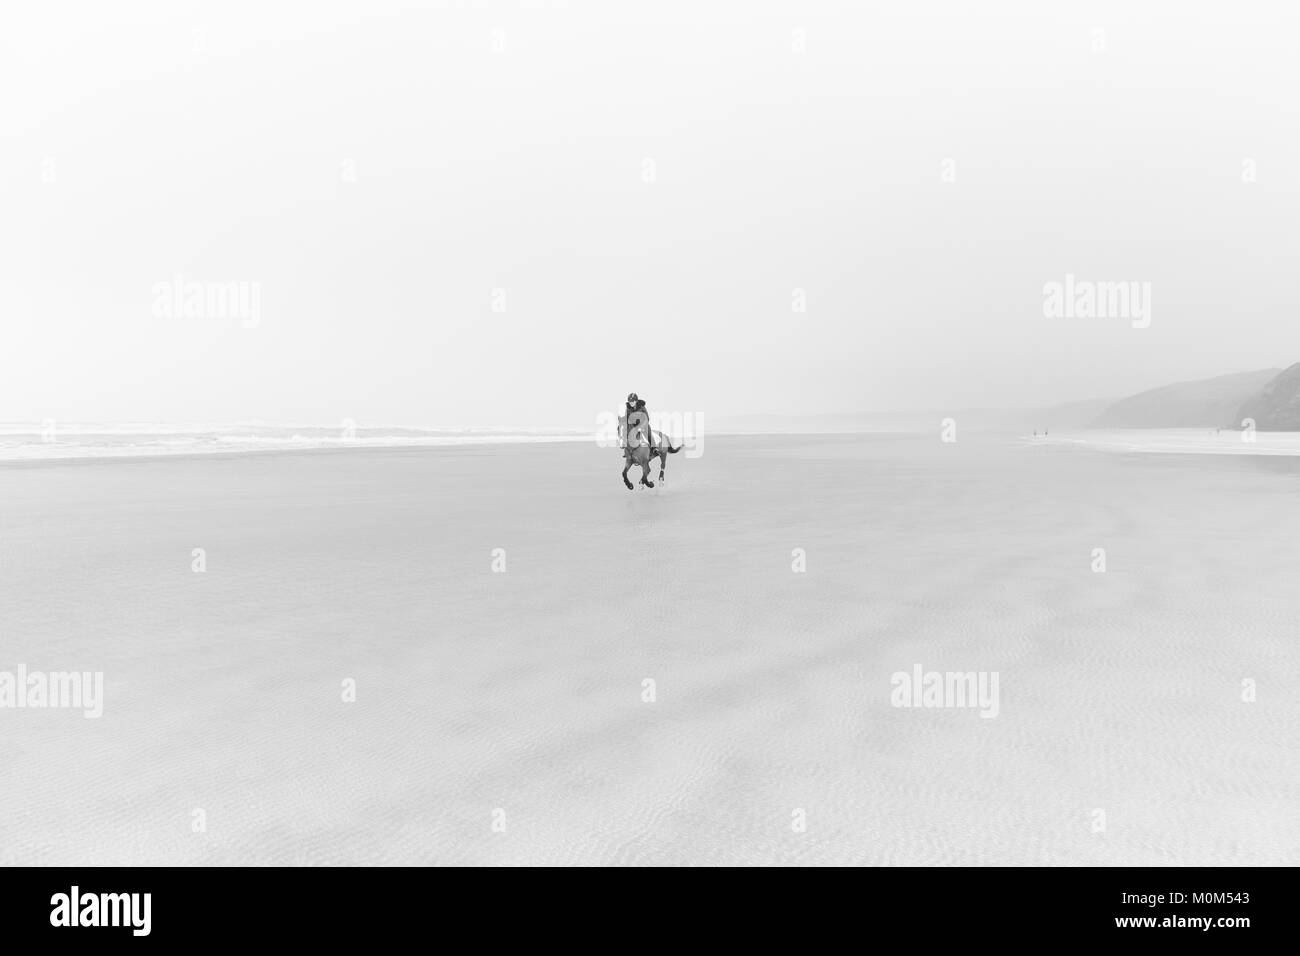 Horse rider riding towards the camera from a distance across low tide. Nice horizon with the sea mist obscuring - Stock Image